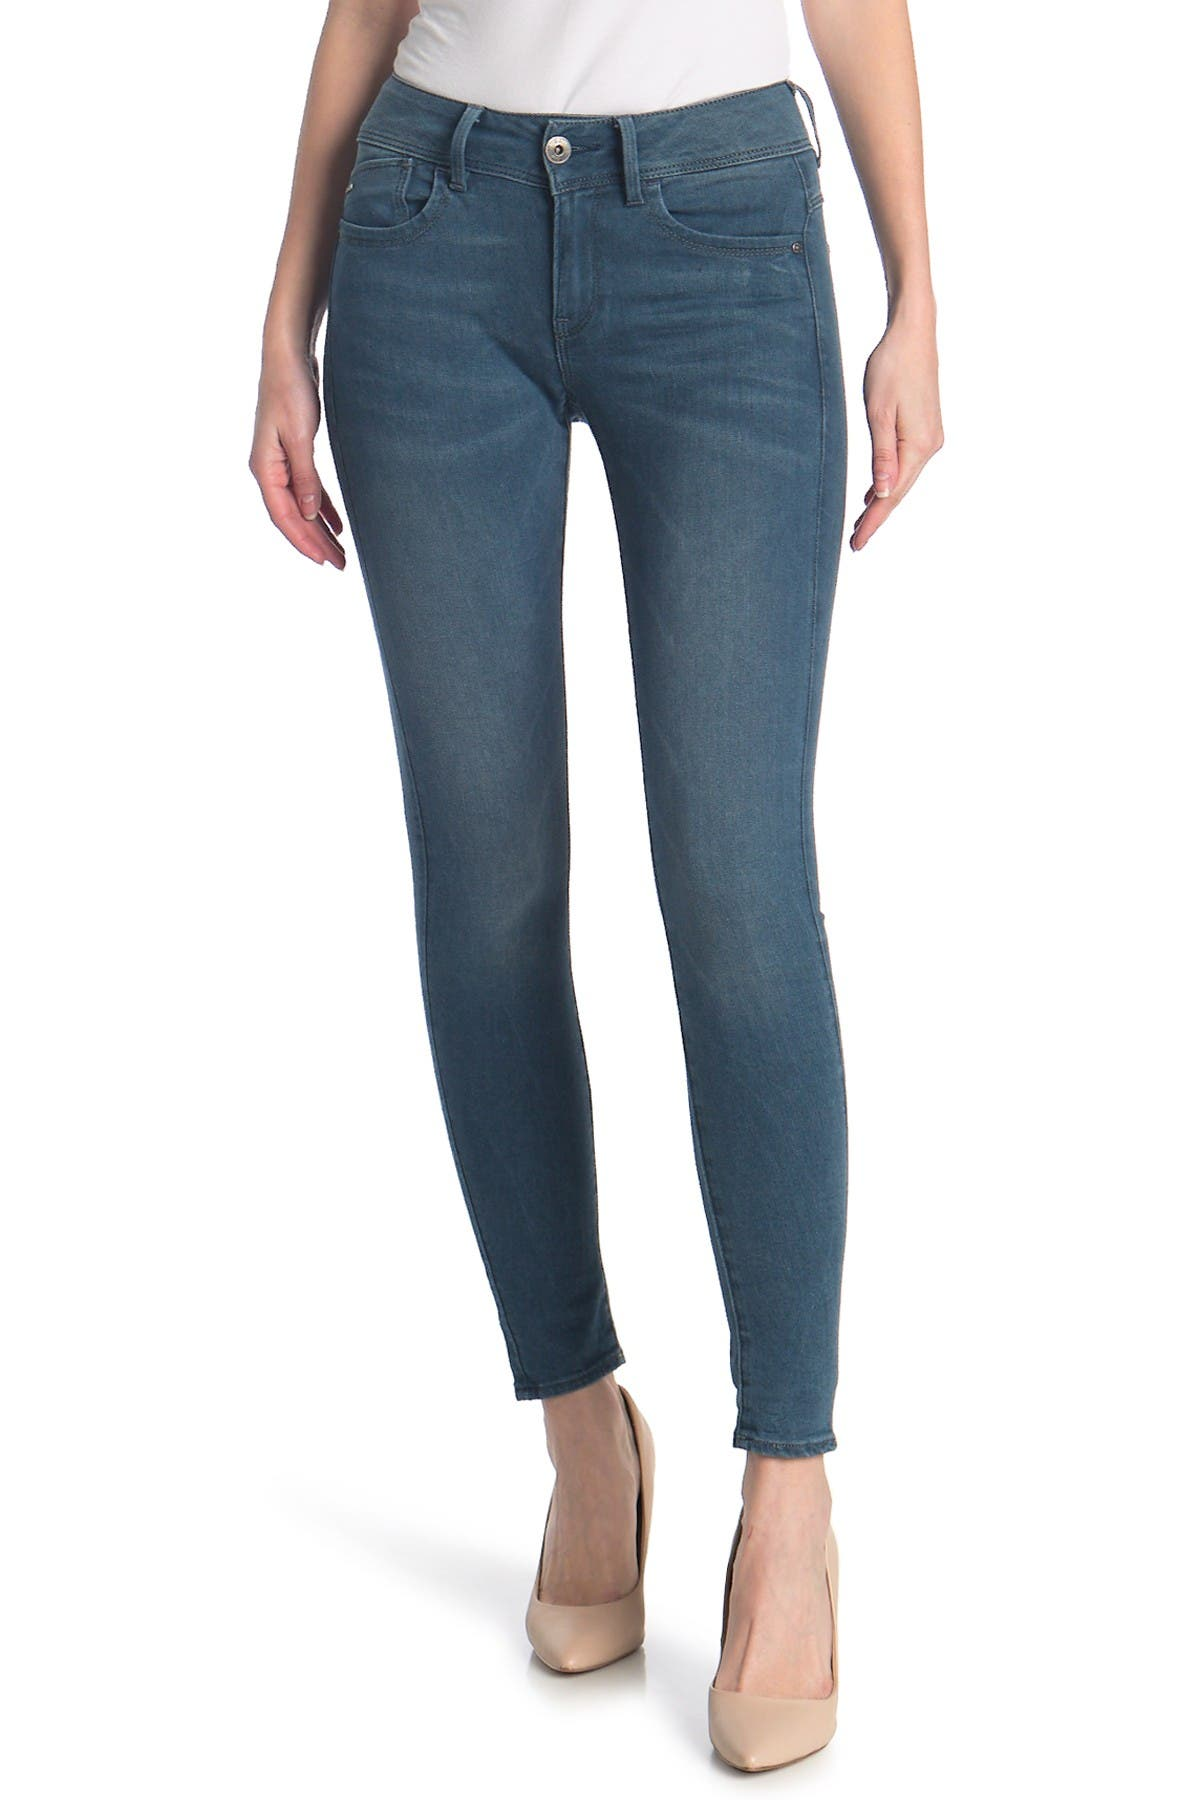 Image of G-STAR RAW Lynn Mid Rise Skinny Jeans